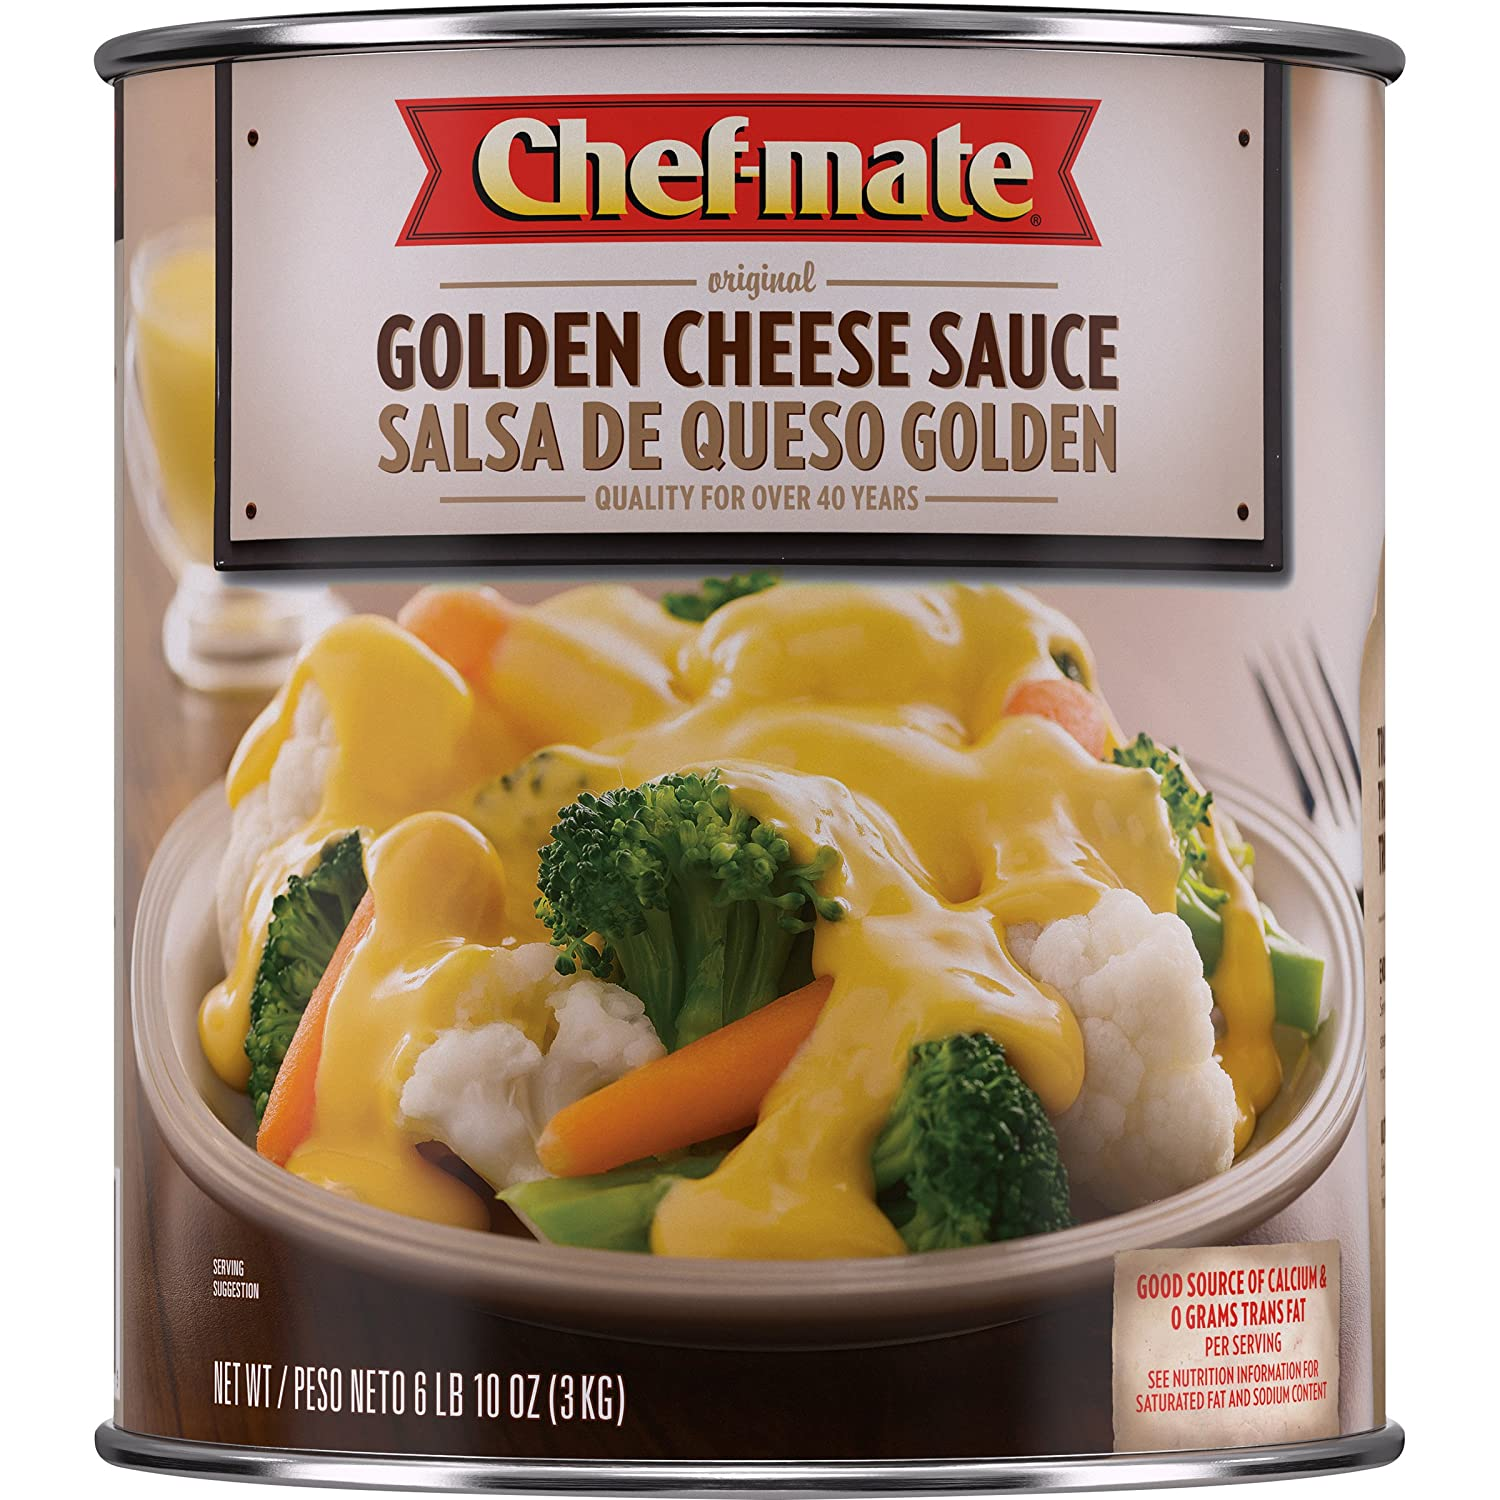 Amazon.com: Chef-mate Que Bueno Mild Nacho Cheese Sauce, Queso, 6 lb 10 oz, 10 Can